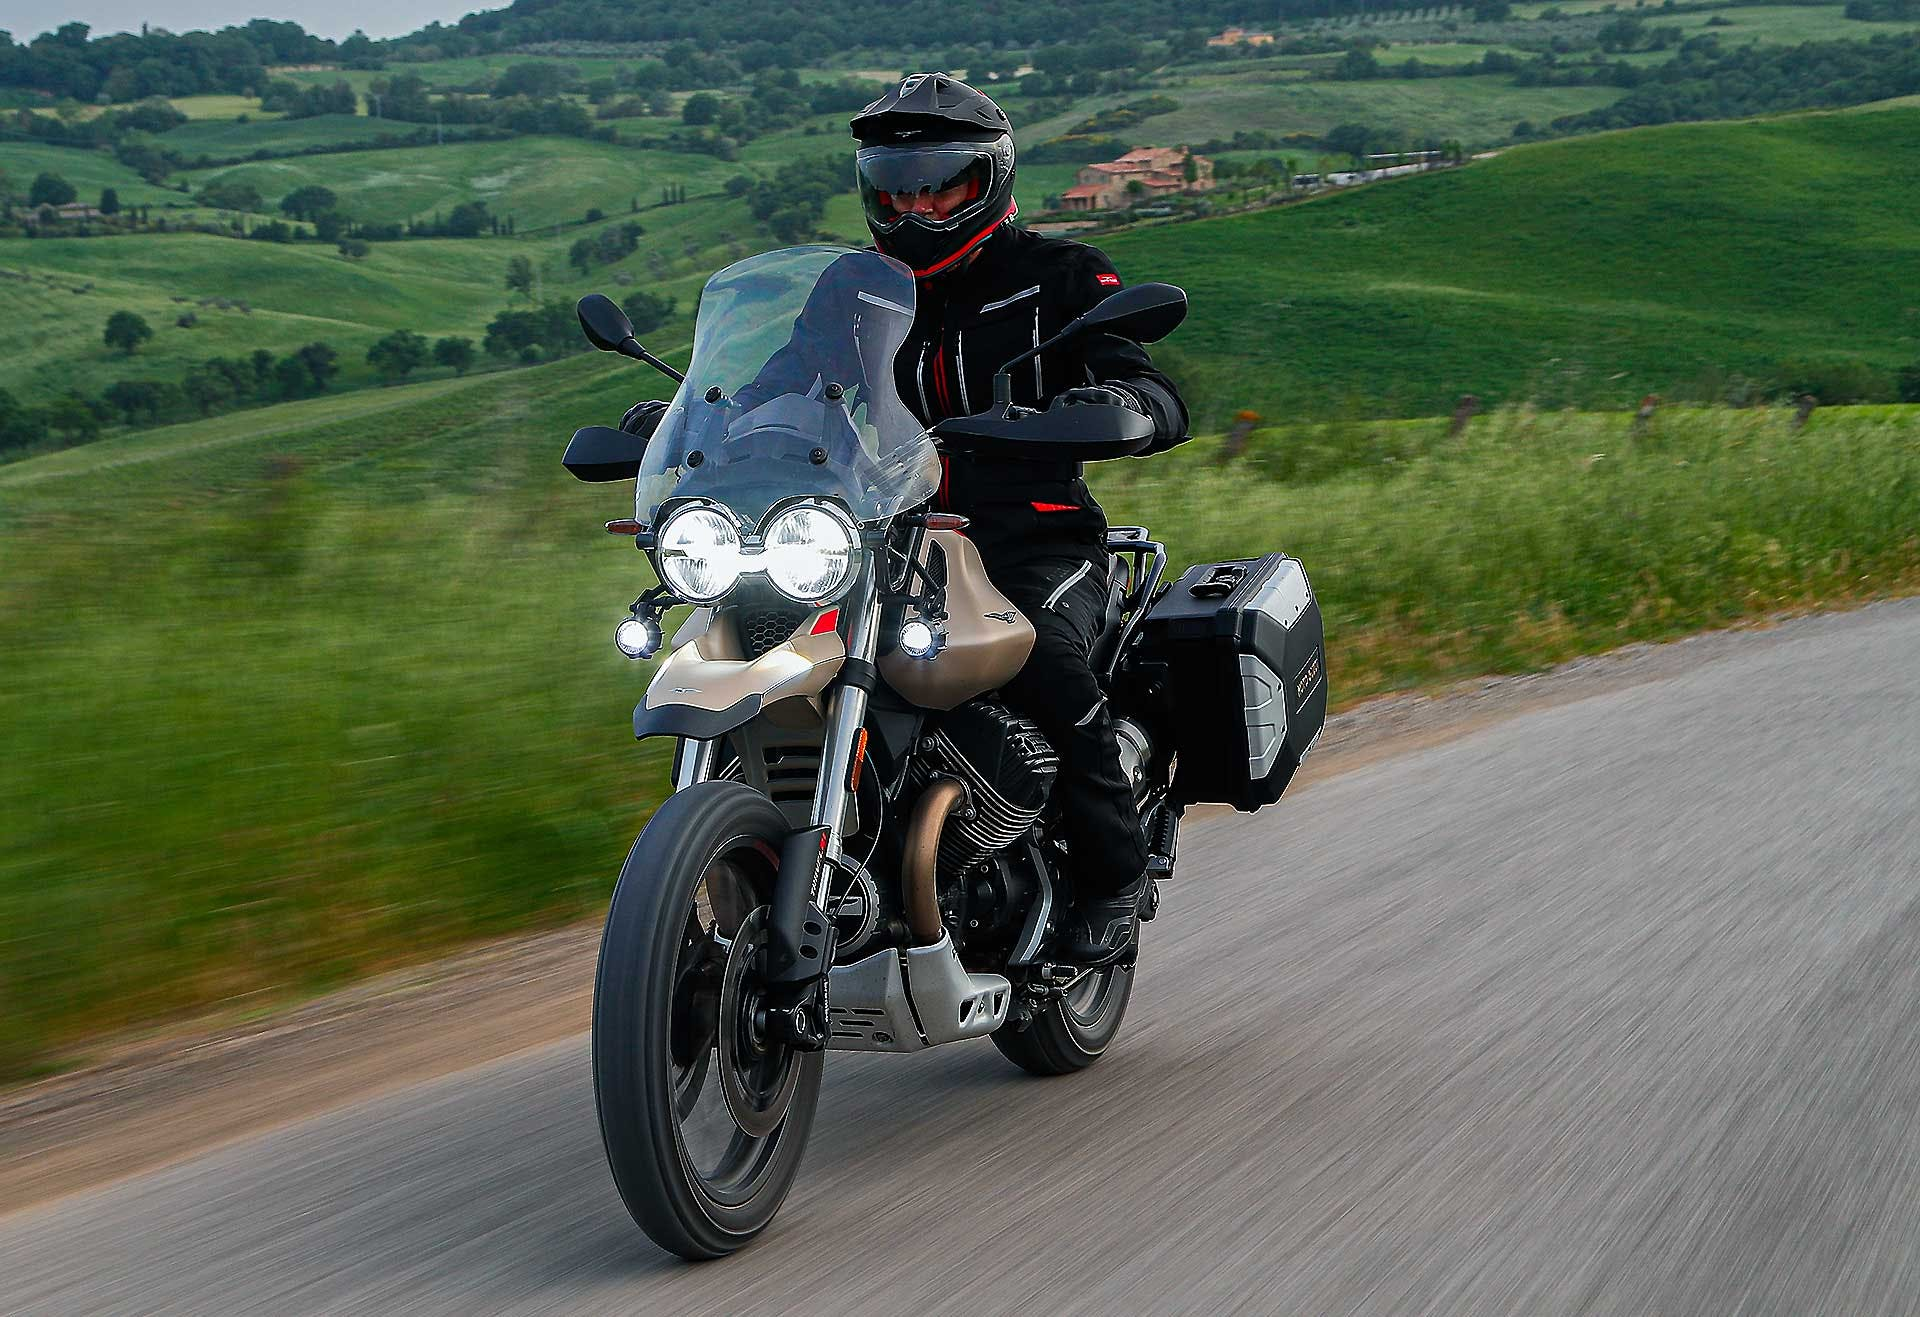 Moto Guzzi V85 TT Travel camera car